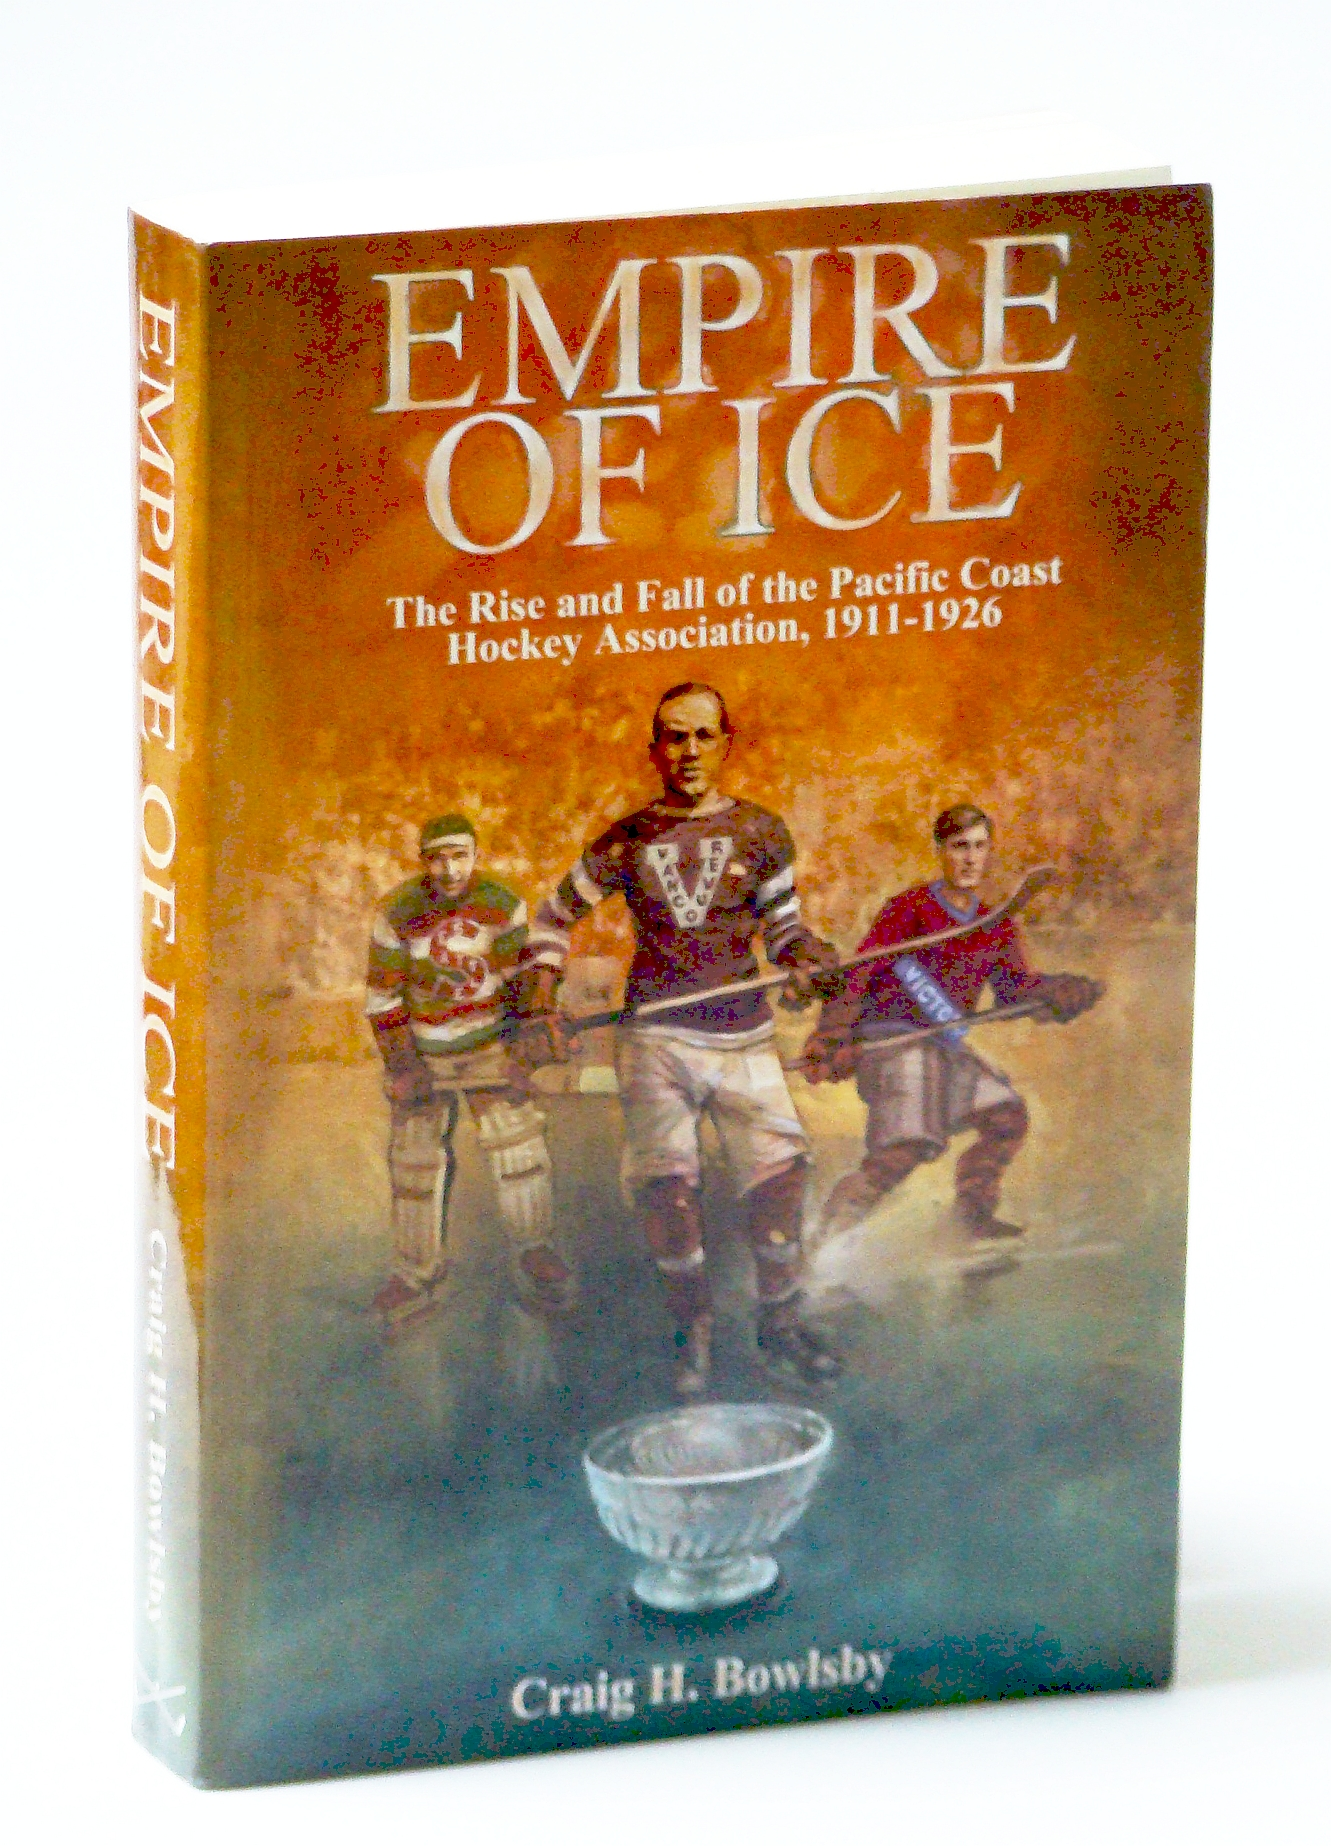 Image for Empire of Ice. The Rise and Fall of the Pacific Coast Hockey Association, 1911-1926.